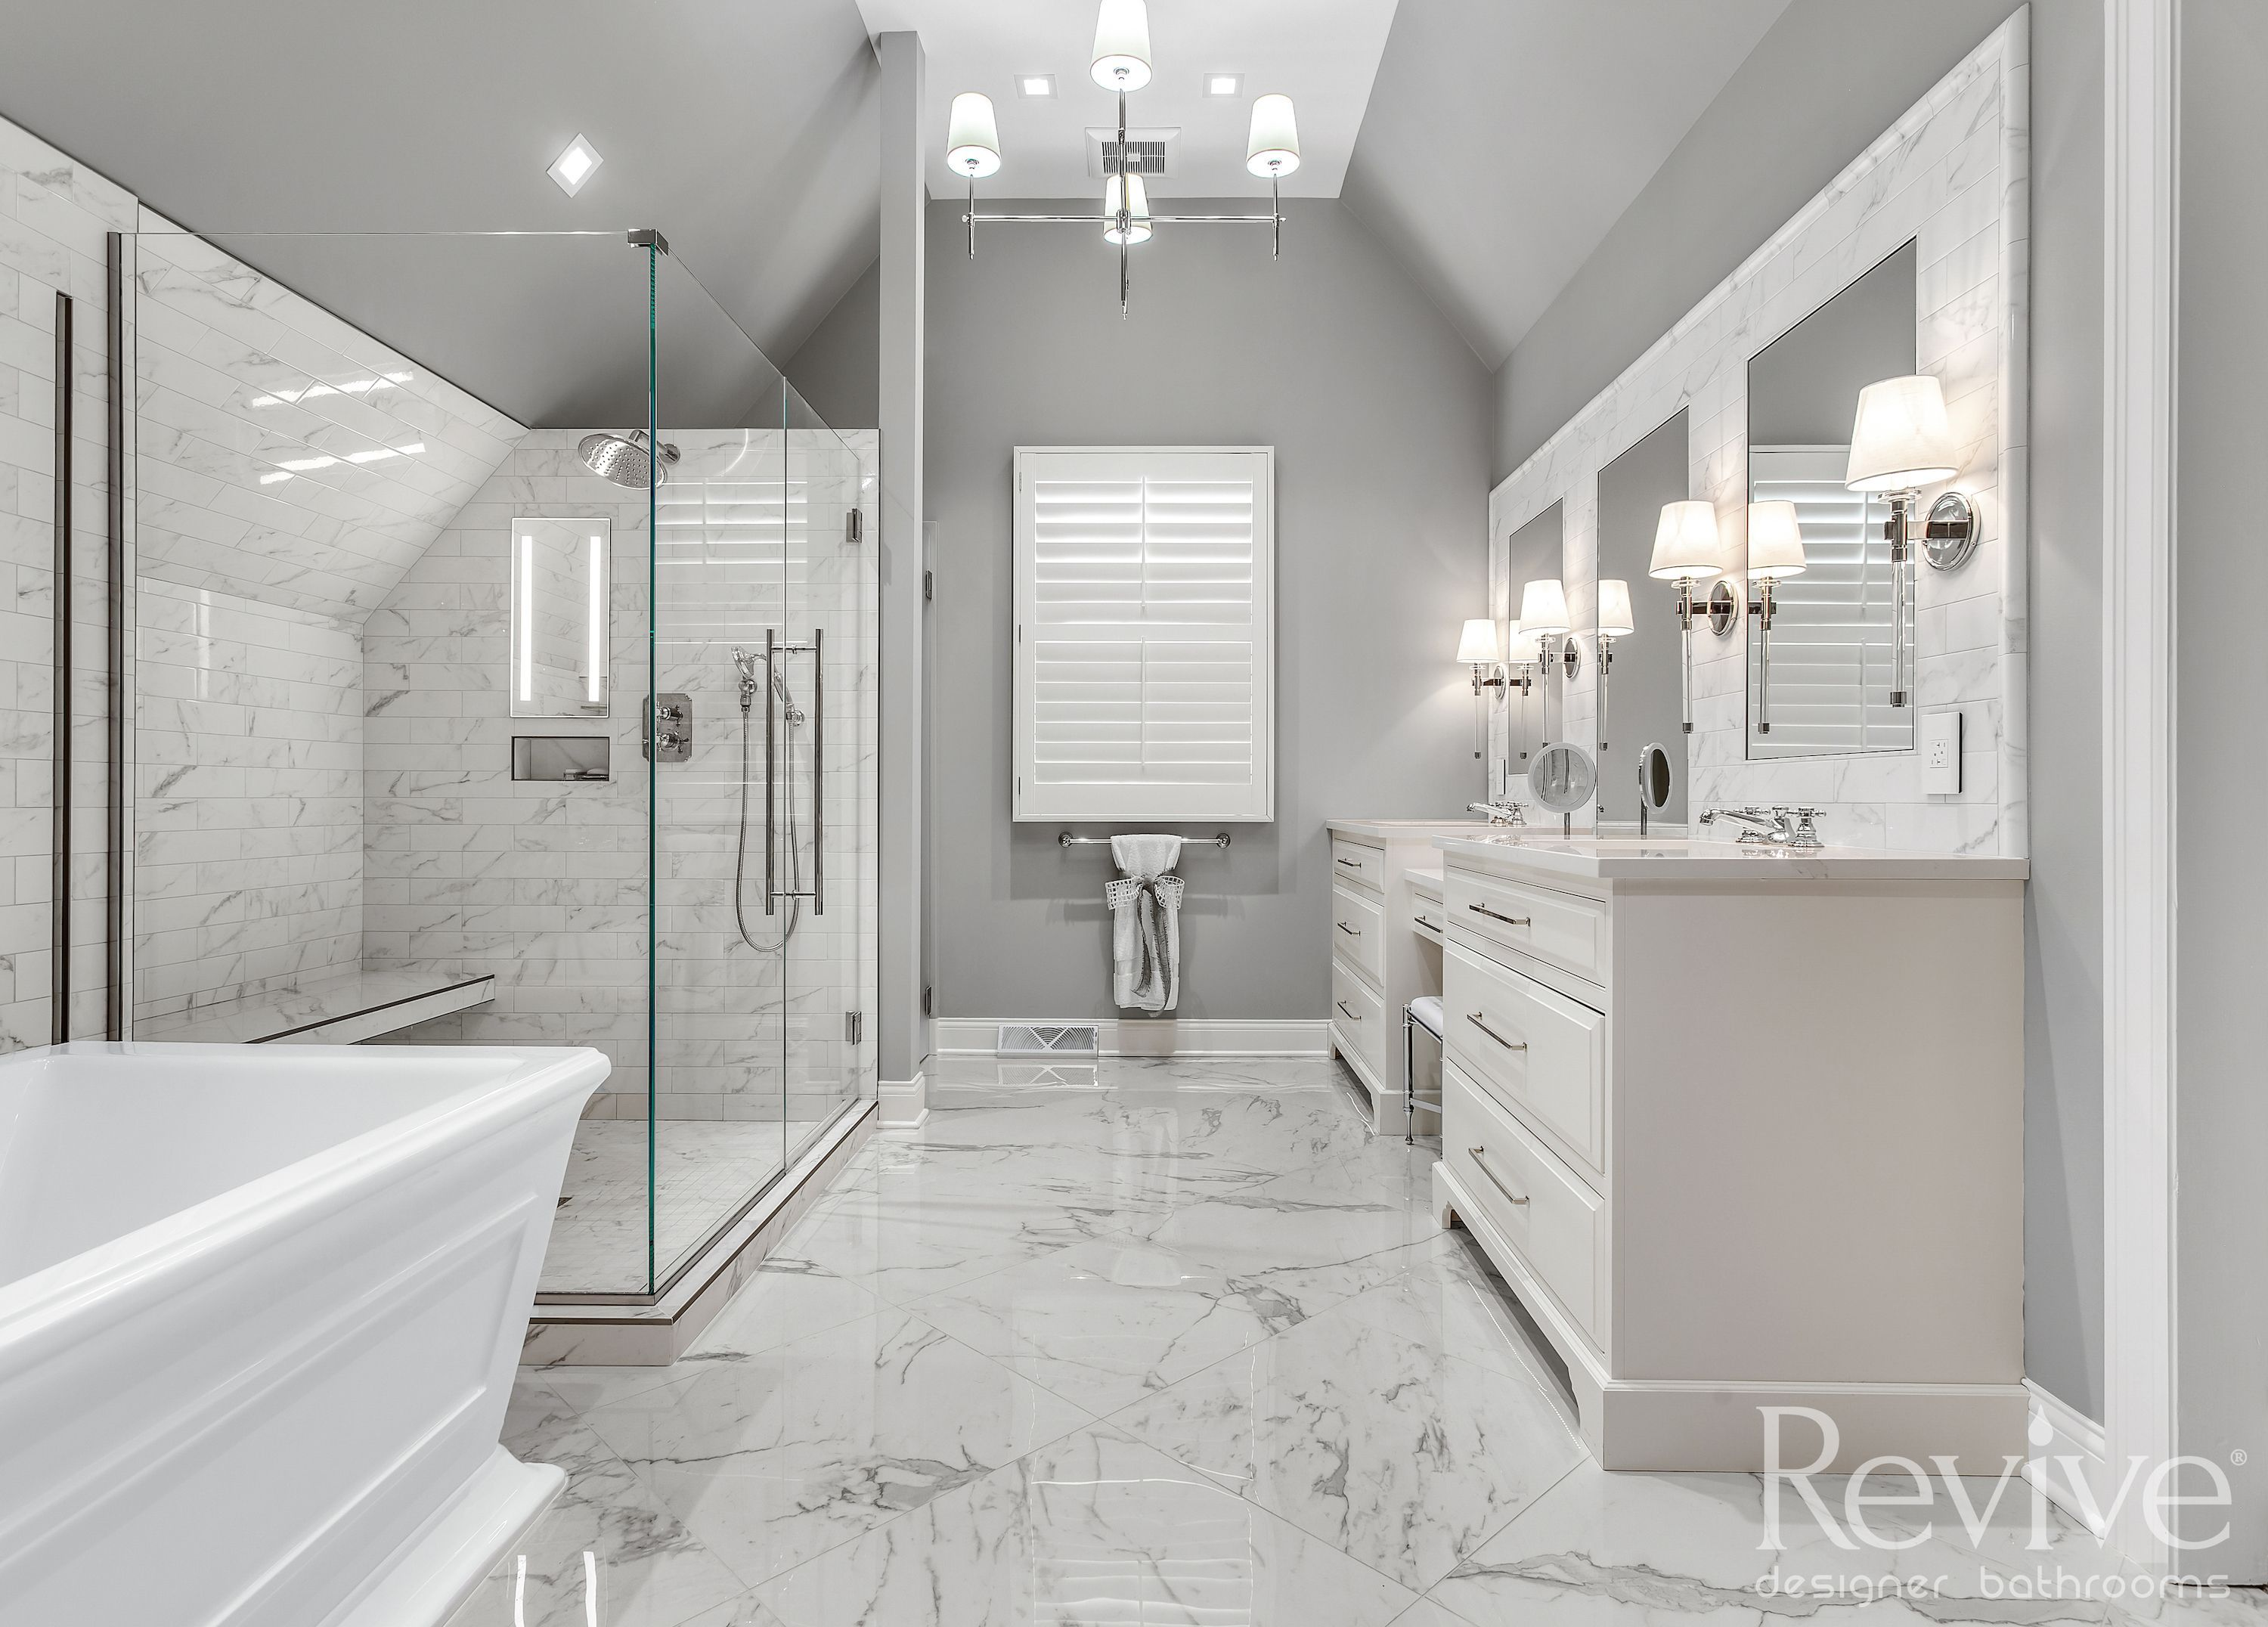 Make It Monochromatic Using One Color Or Tone Throughout Your Bathroom Is An Awesome Trick To Transform Your Bathrooms Remodel Bathroom Design Custom Bathroom